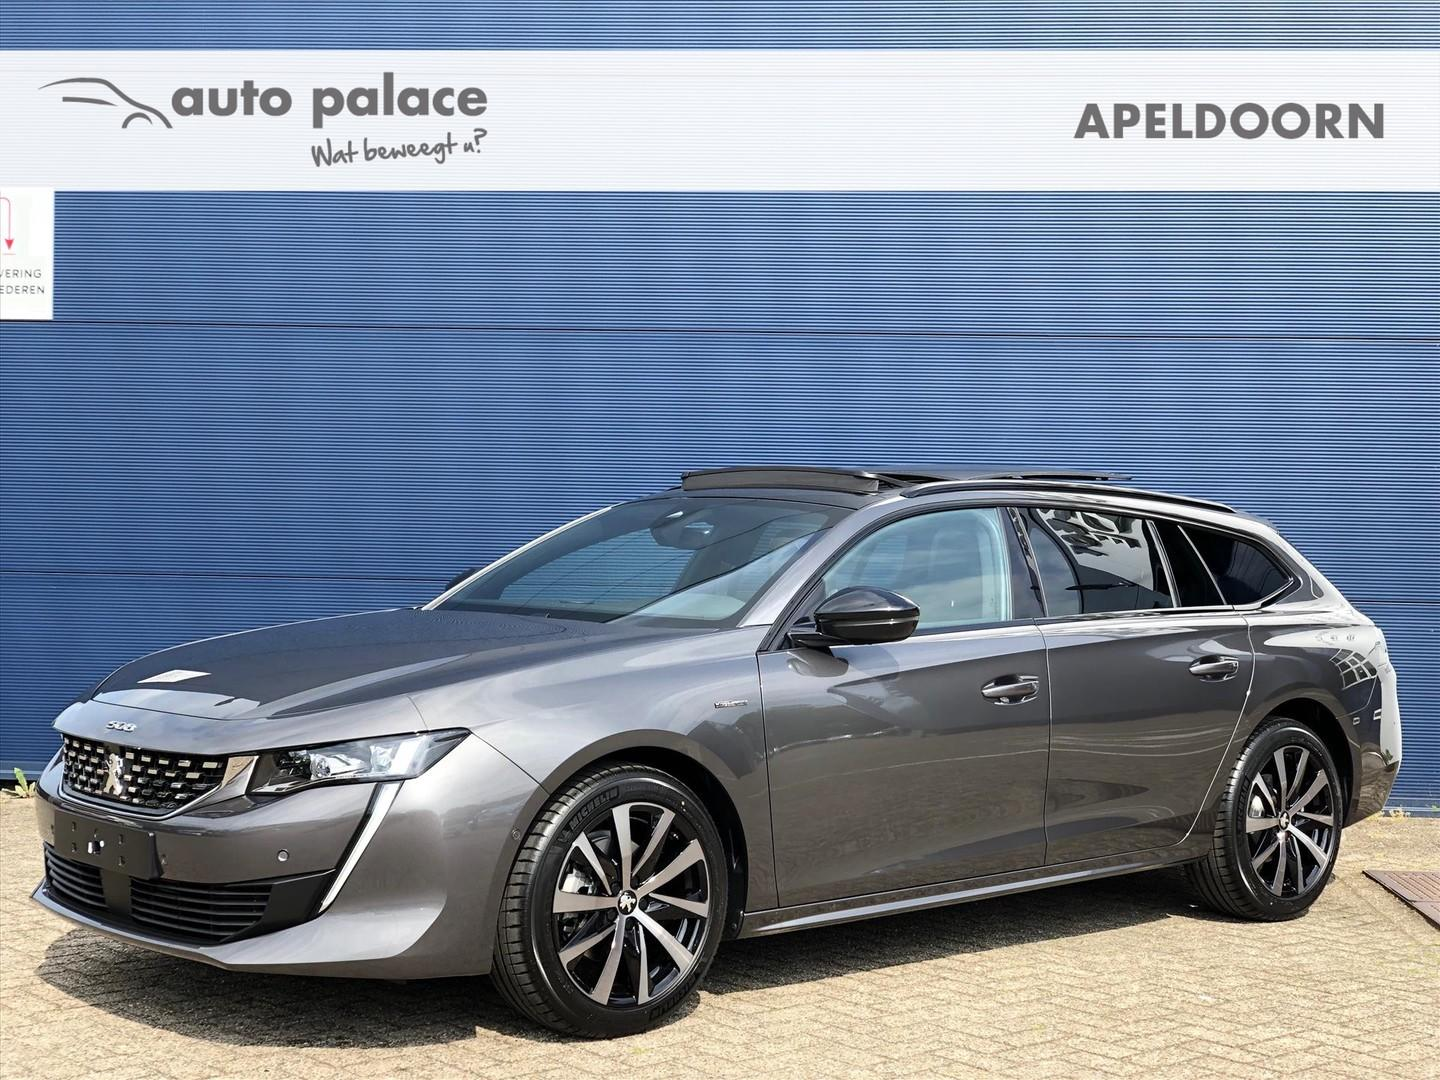 Peugeot 508 Sw blue lease gt-line free upgrade 180pk automaat